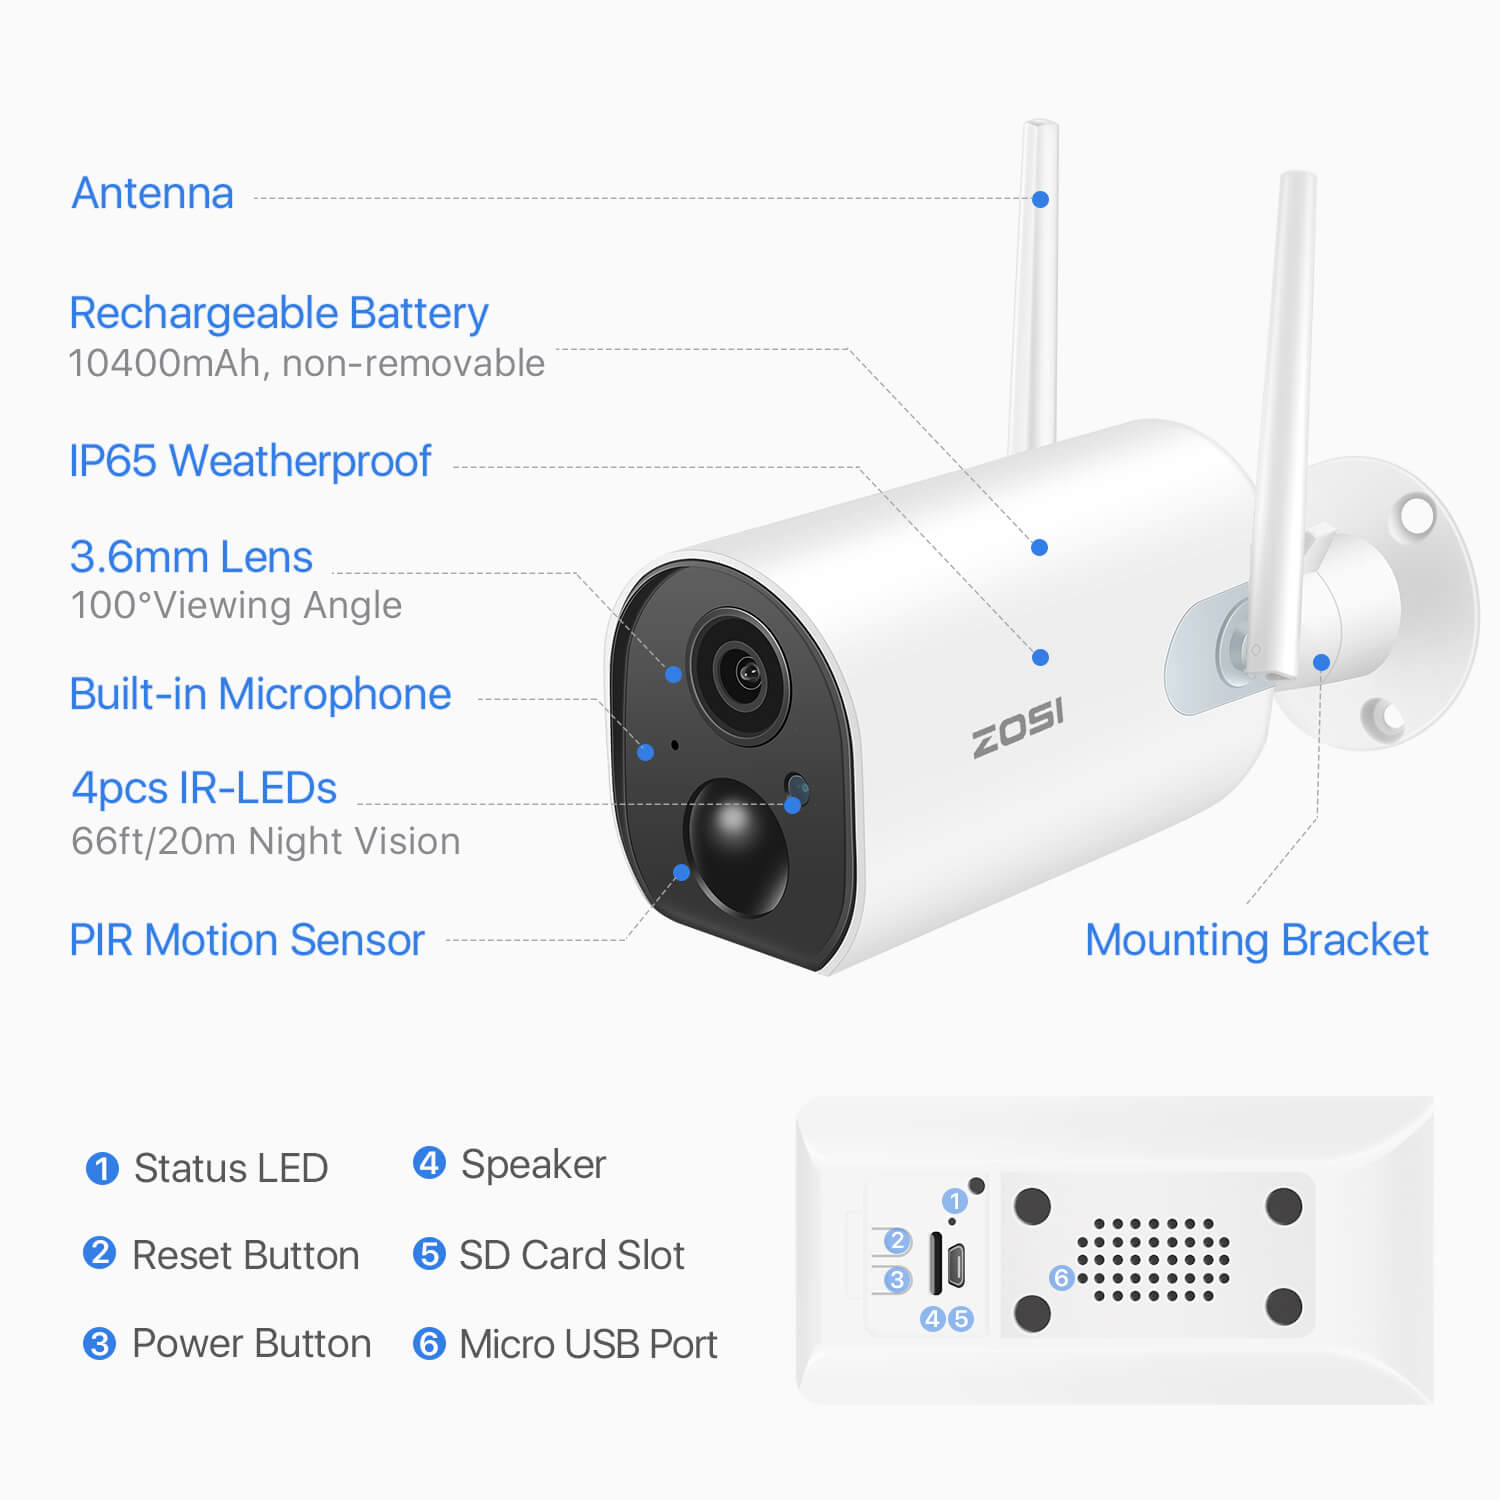 100% Wire Free IP Camera, Rechargeable Battery Powered, PIR Motion Detection, Two Way Audio